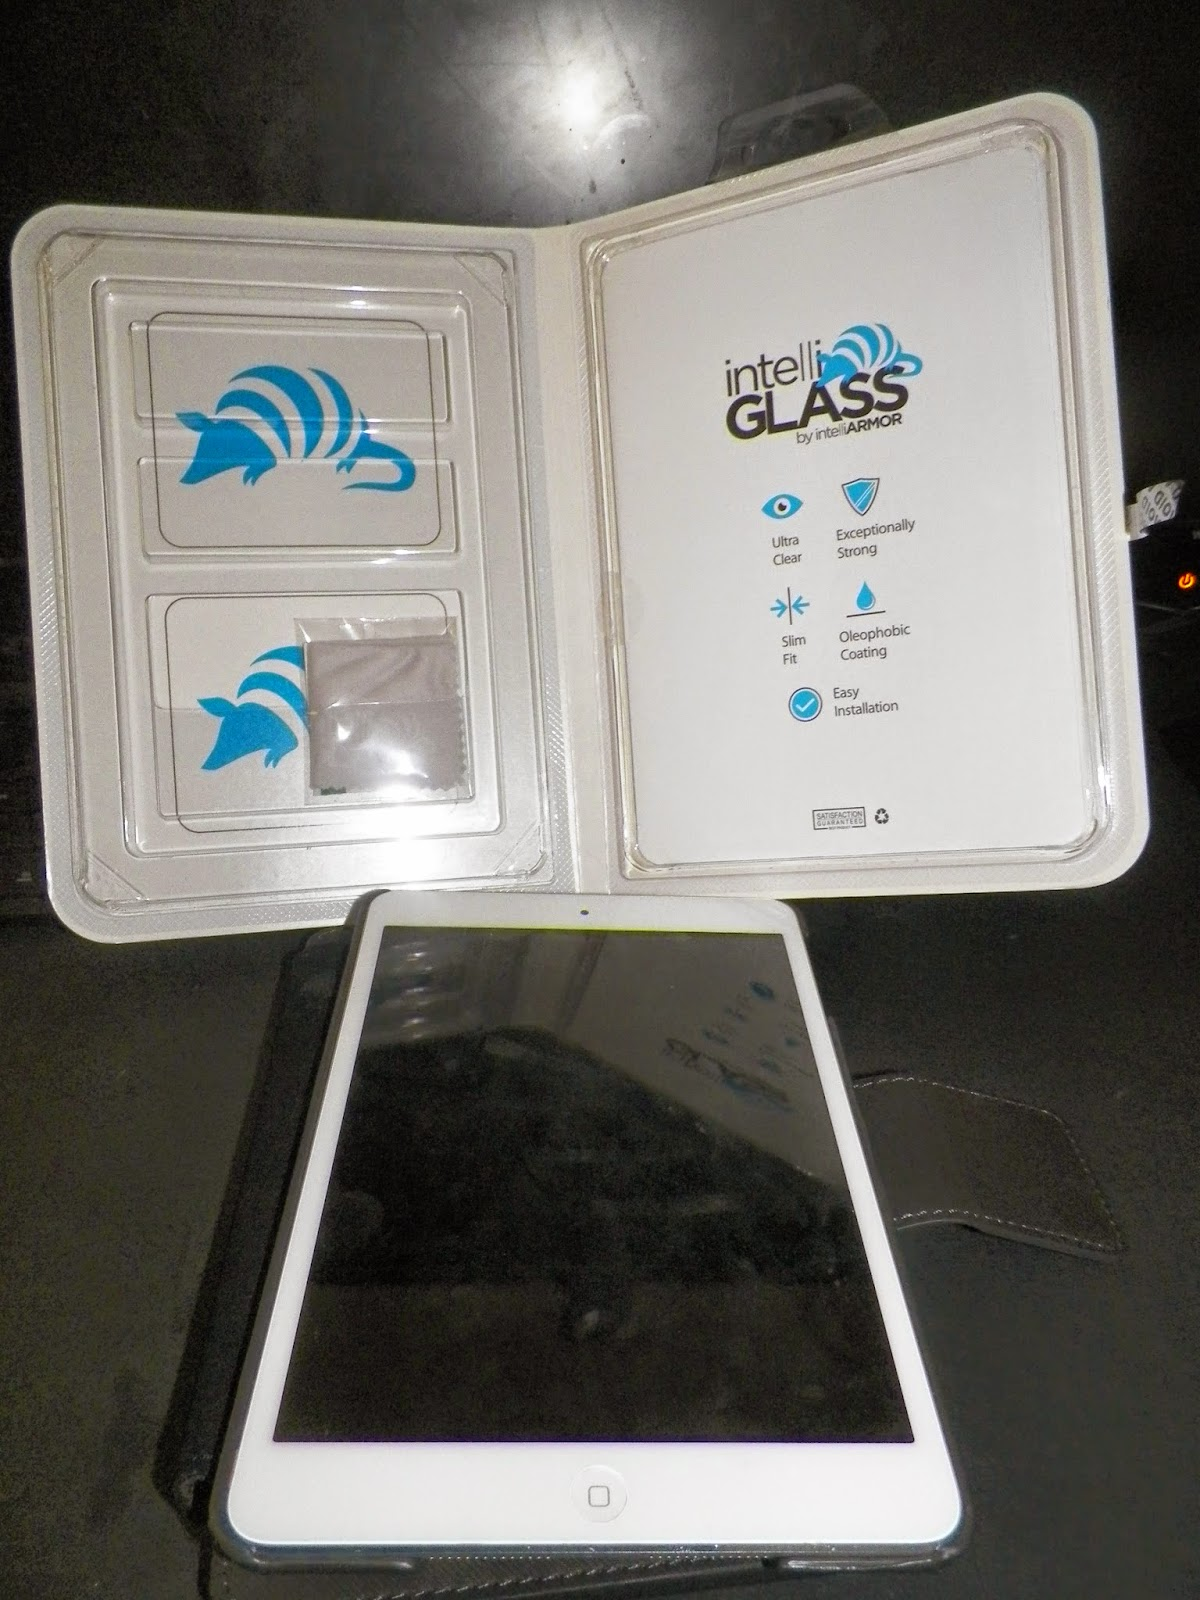 intelliGLASSScreenProtector.jpg